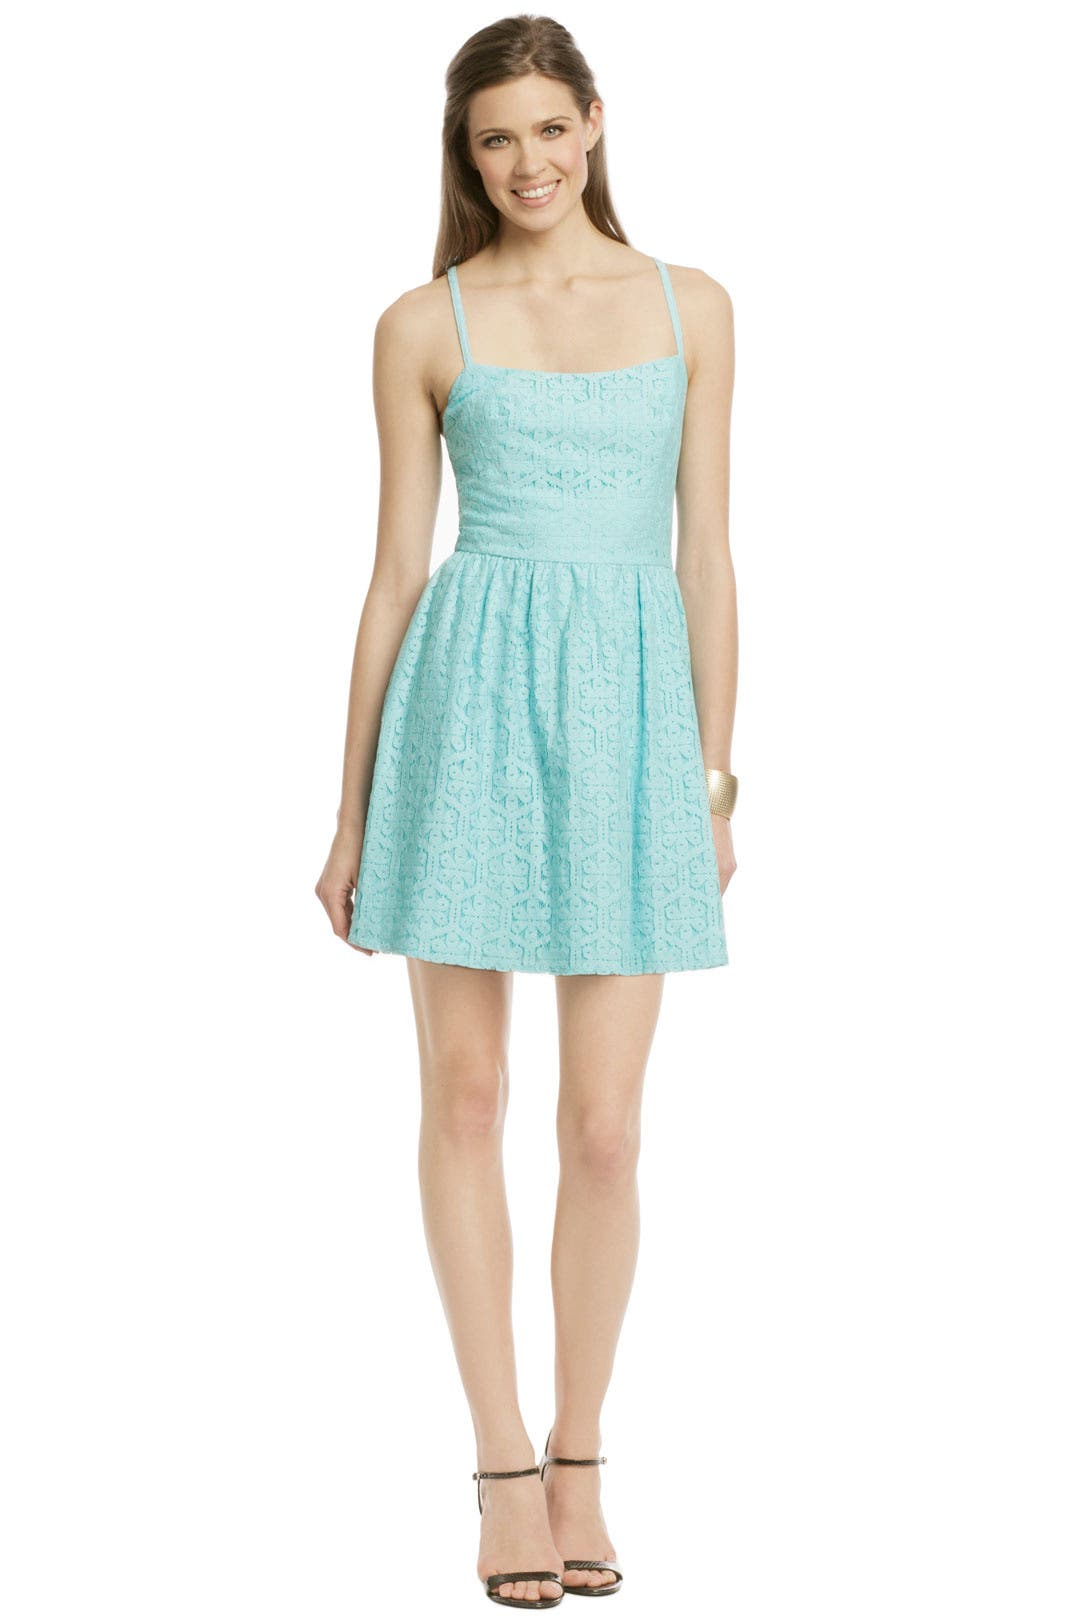 Elisse Dress by Lilly Pulitzer